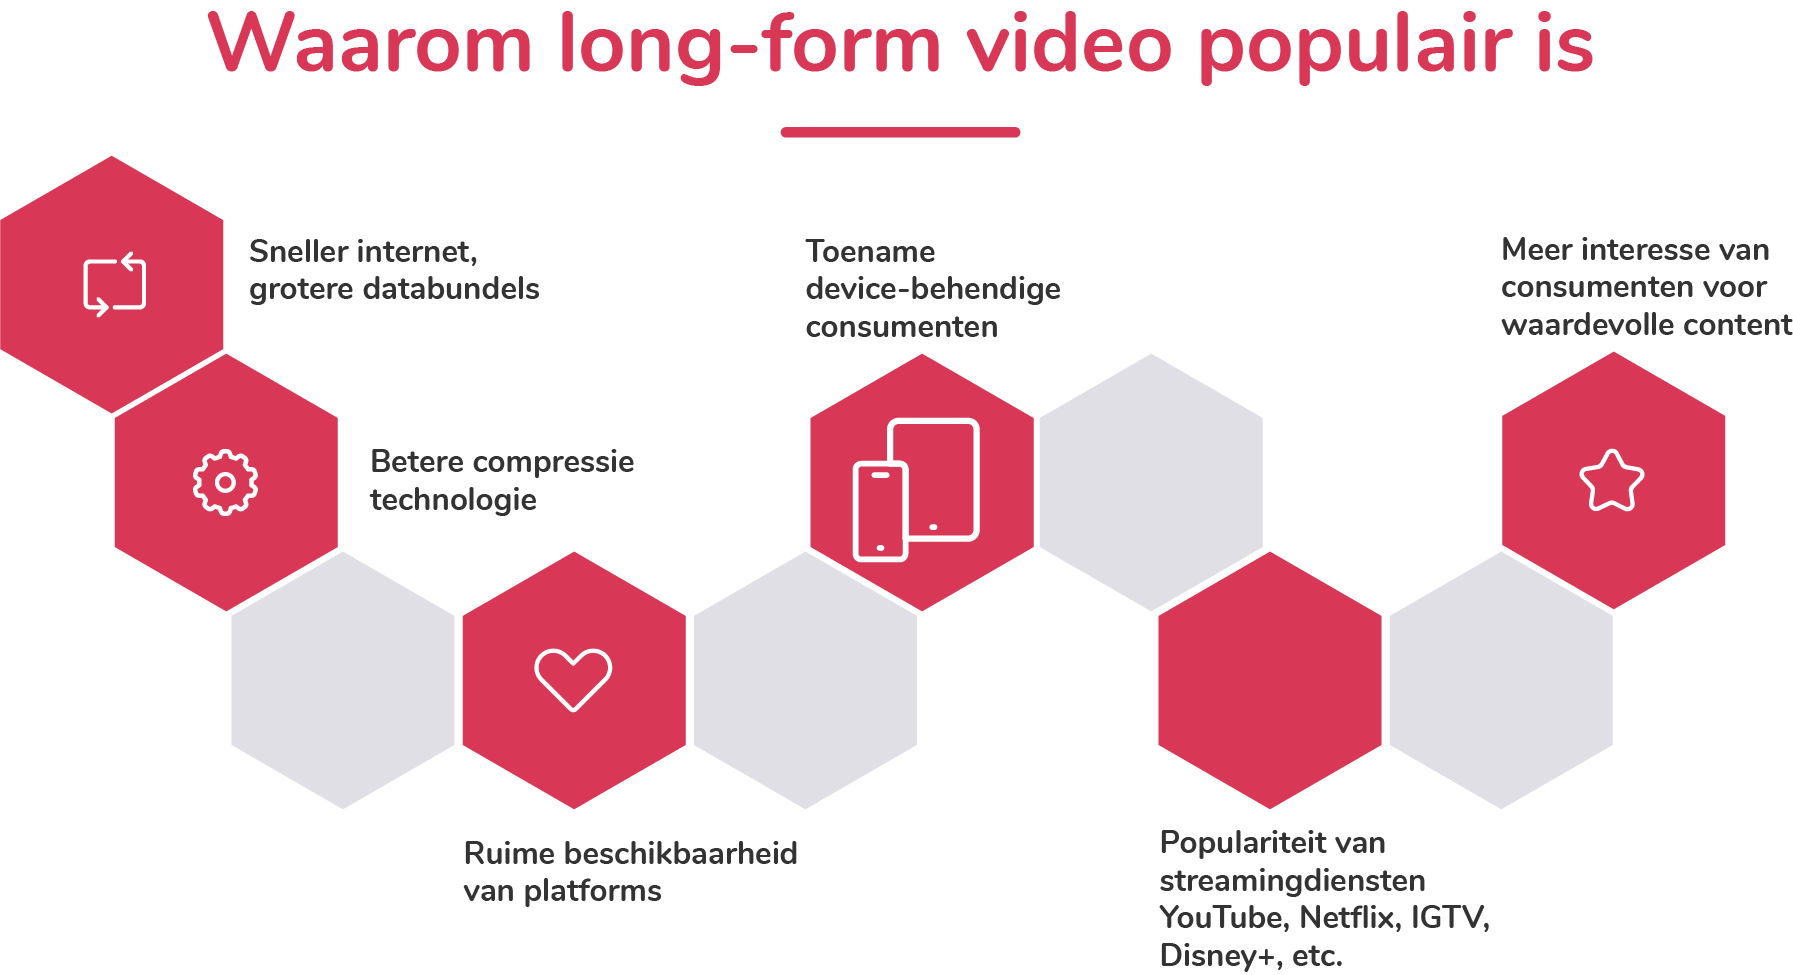 waarom-long-form-video-populair-is